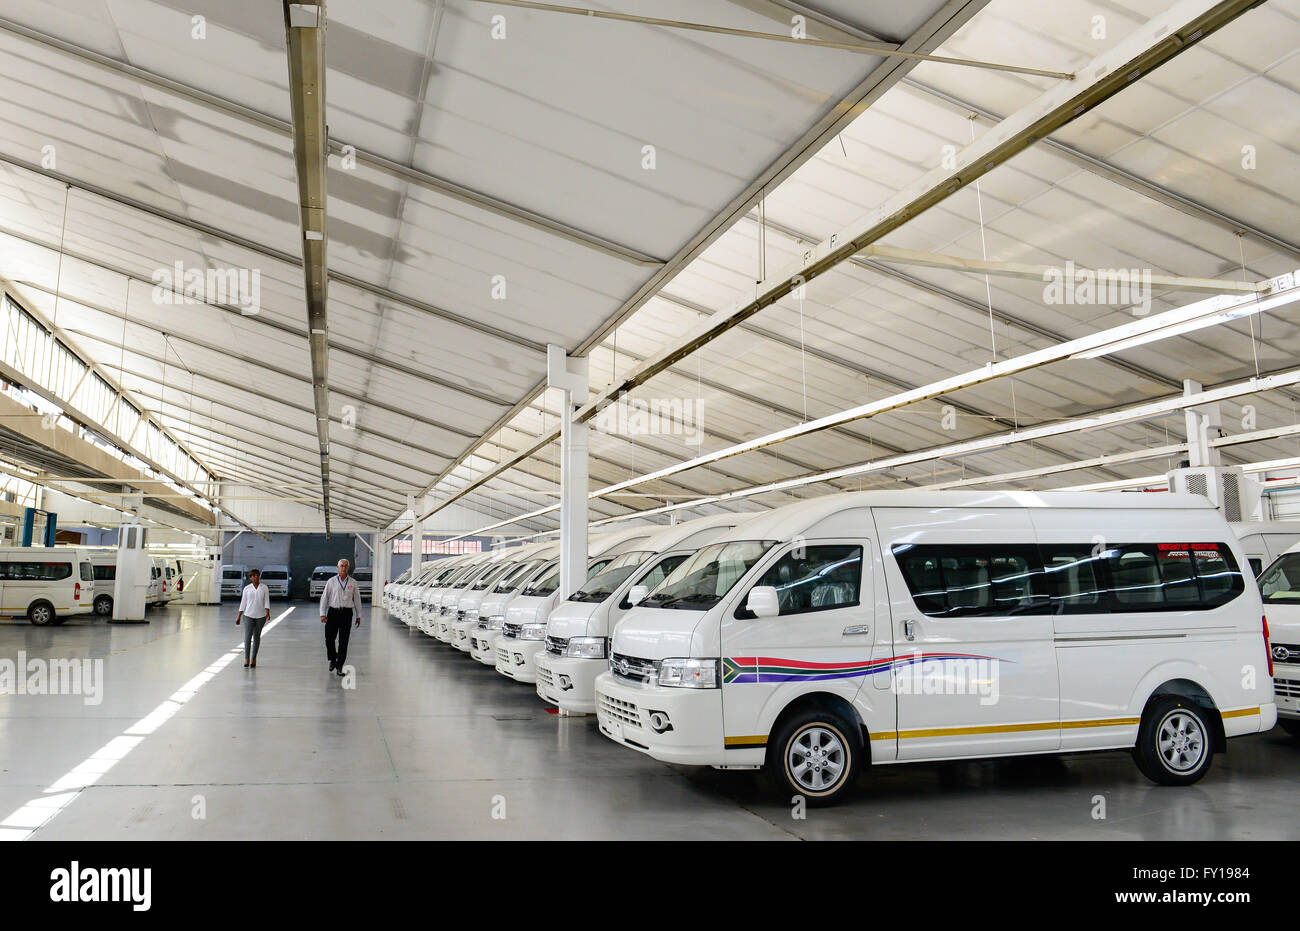 Johannesburg, Johannesburg. 19th Apr, 2016. Two staff members walk past buses at the automobile plant of Beijing - Stock Image